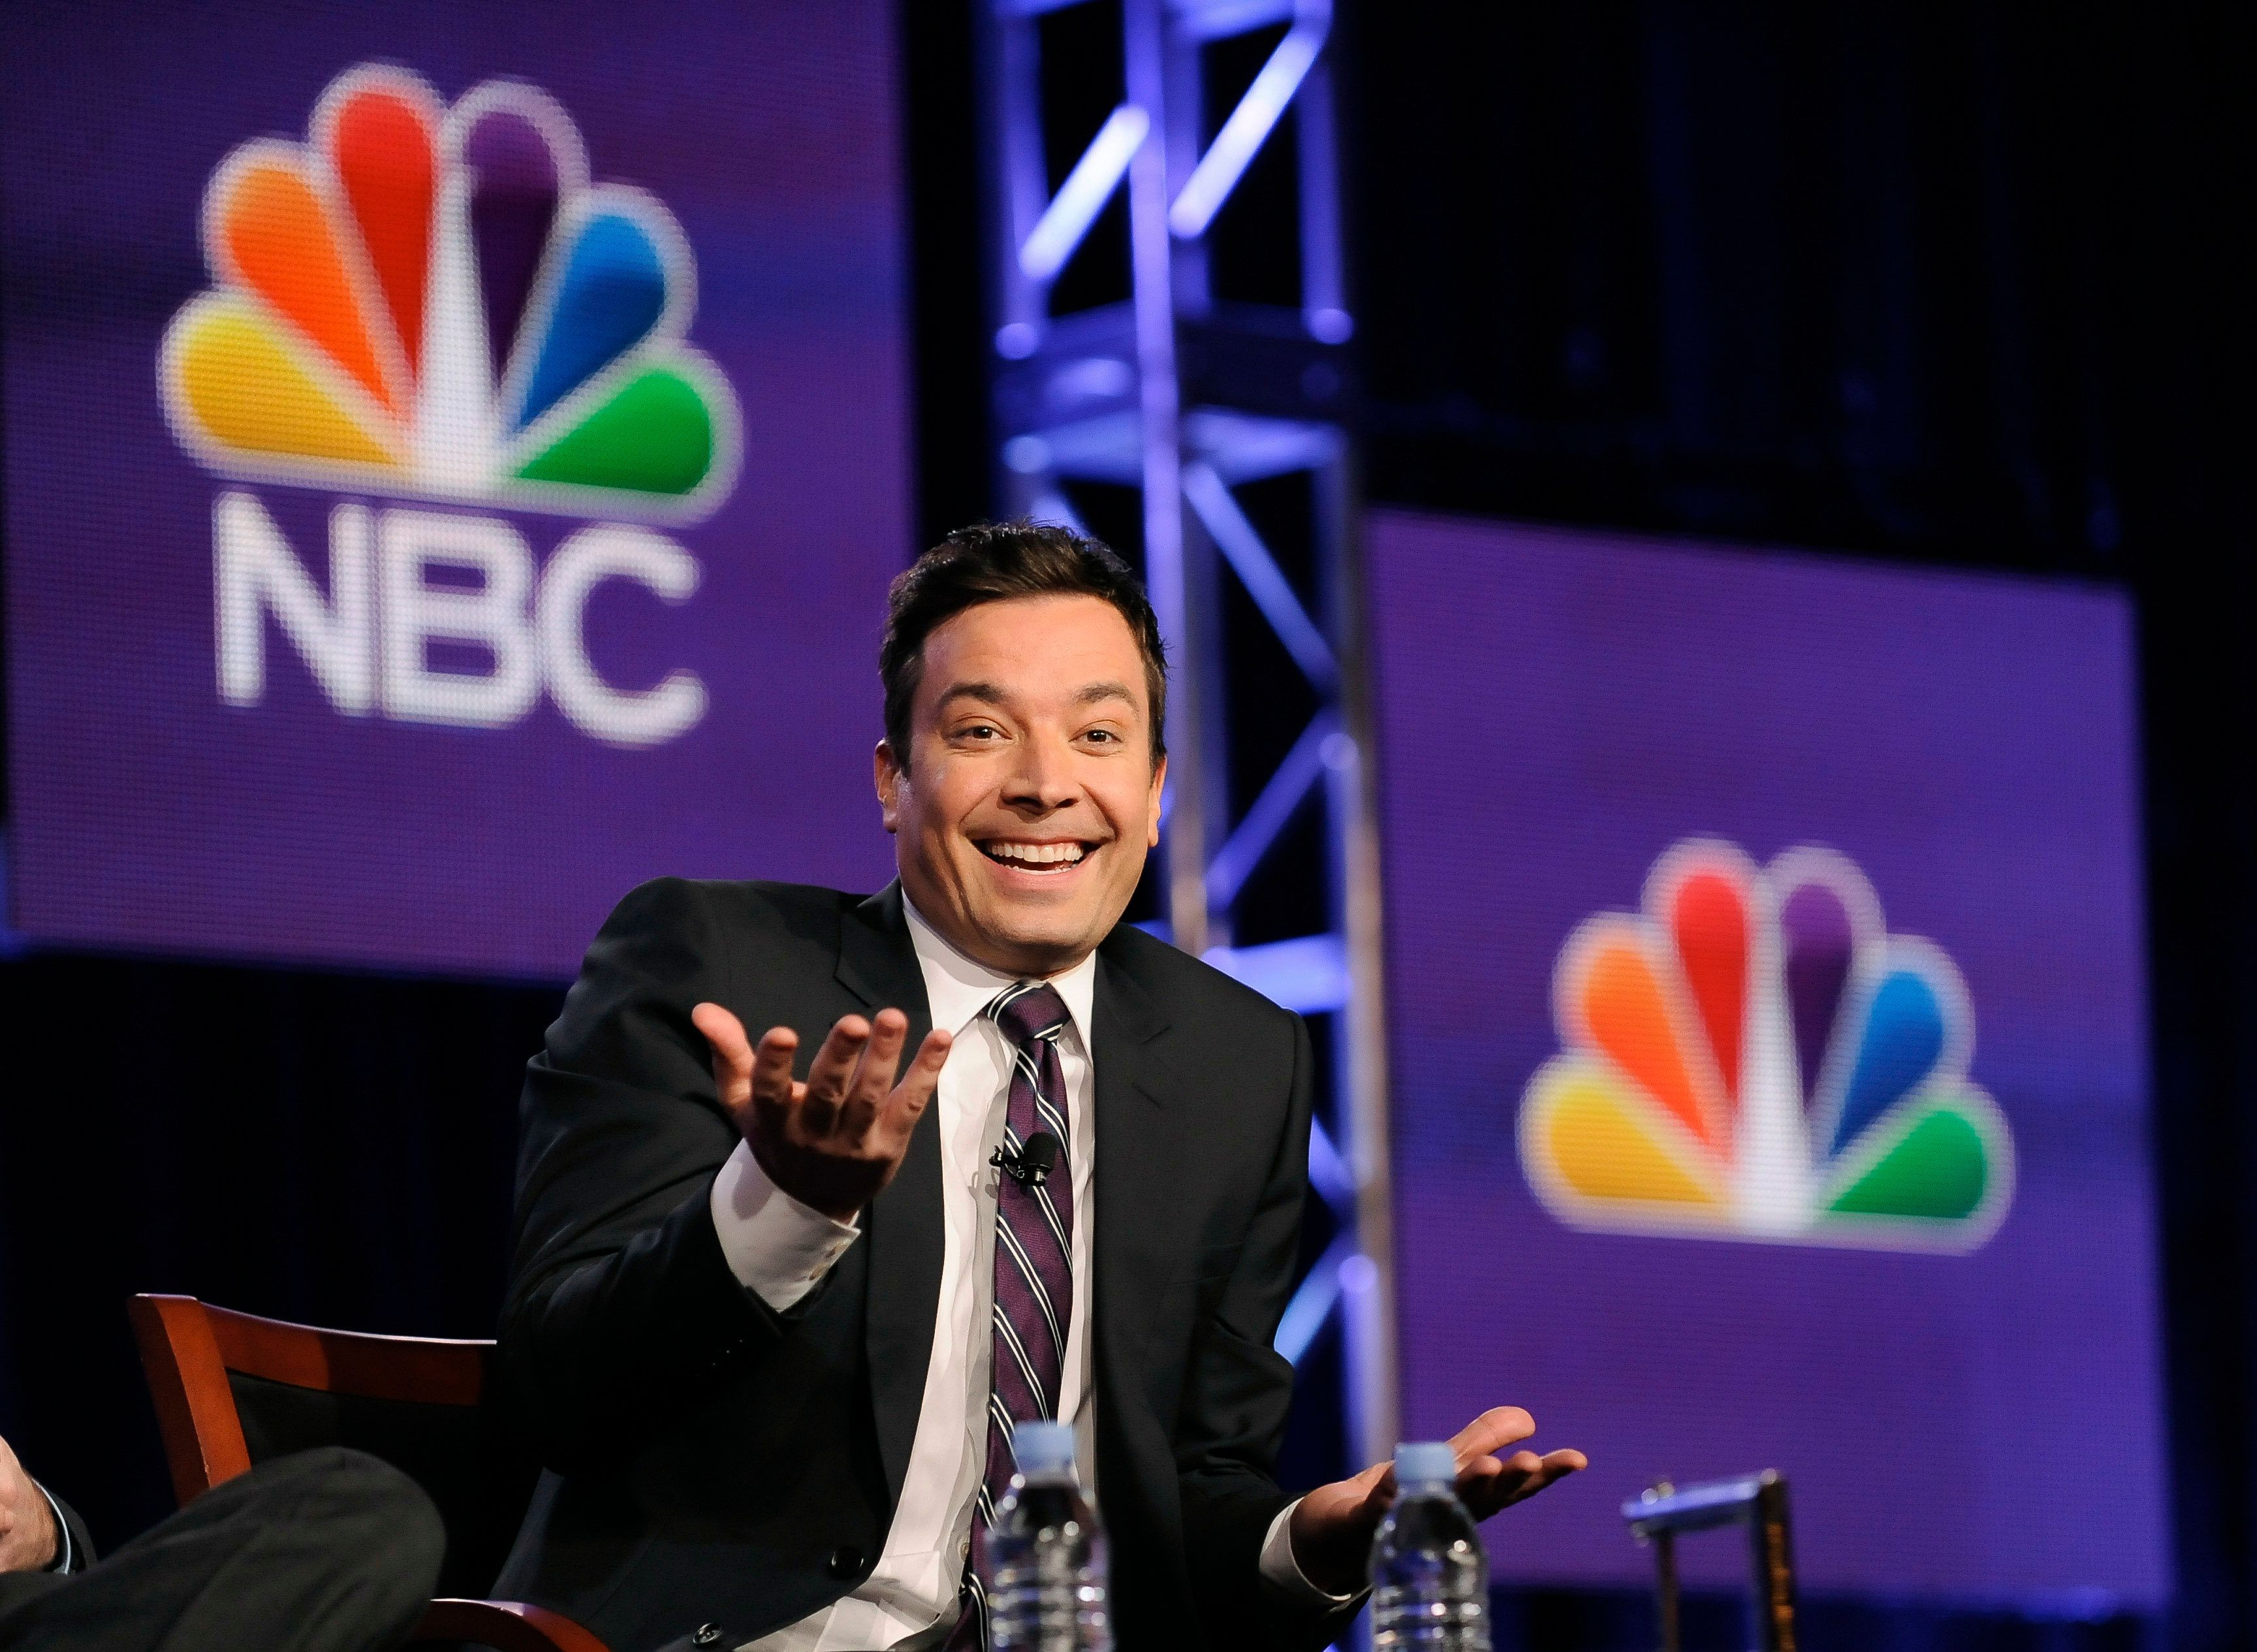 "Jimmy Fallon, host of ""The Tonight Show Starring Jimmy Fallon"",  takes part in a panel discussion at the NBC portion of the 2014 Winter Press Tour for the Television Critics Association in Pasadena, California, January 19, 2014. REUTERS/Gus Ruelas (UNITED STATES - Tags: ENTERTAINMENT)"